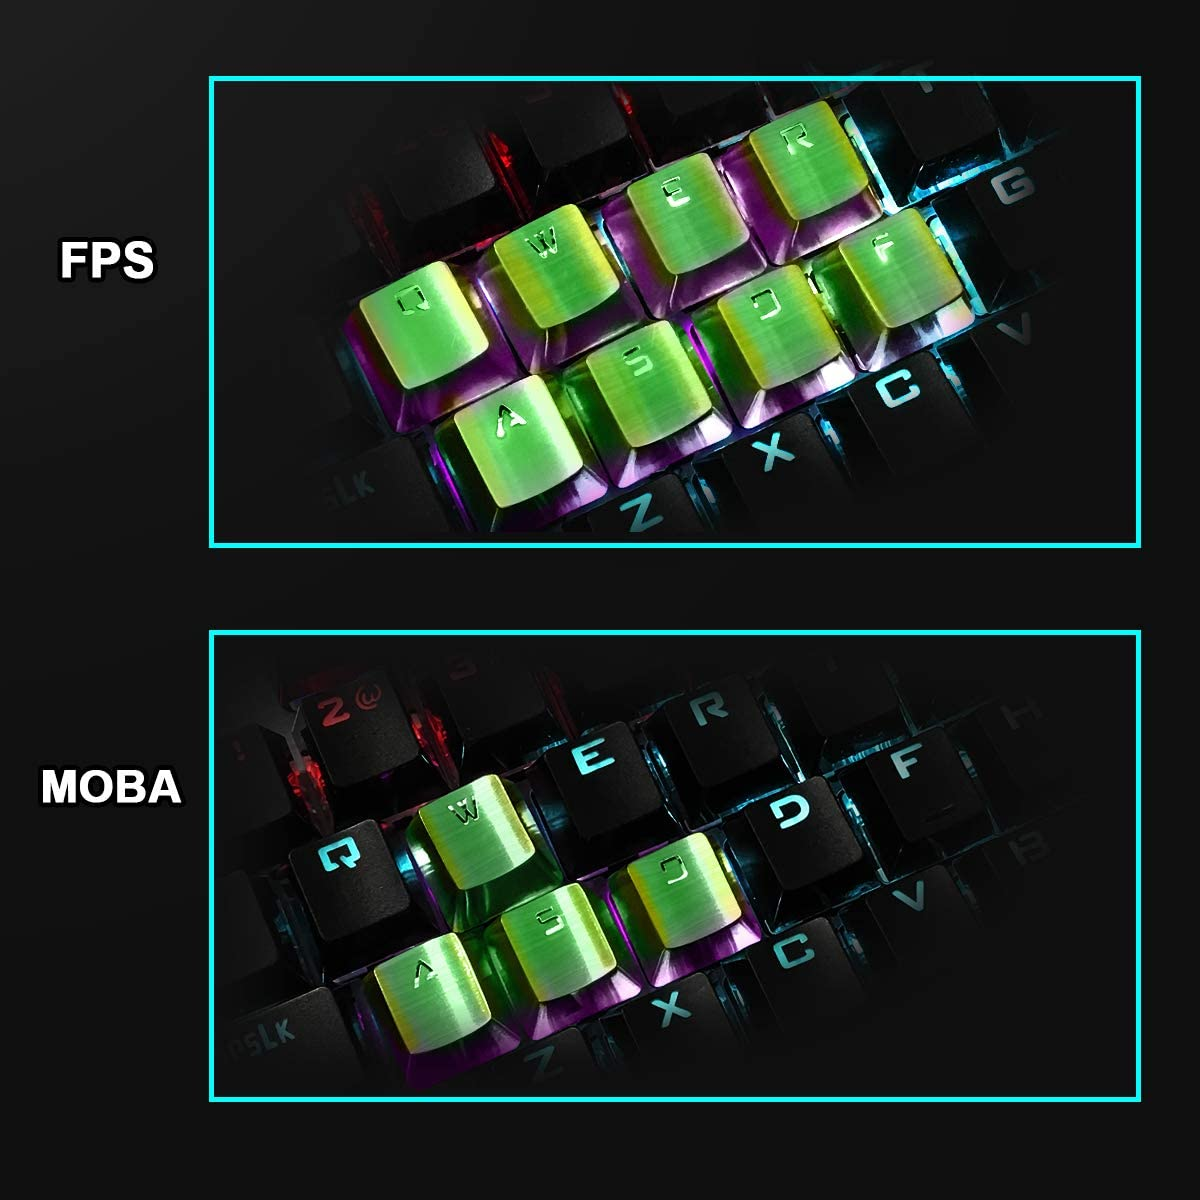 Upgrade Customize Gaming Kit Stainless Steel Keycaps with Backlit Compatible with Mechanical Keyboard Three Years Warranty Silver Fitlink Gaming Keycaps